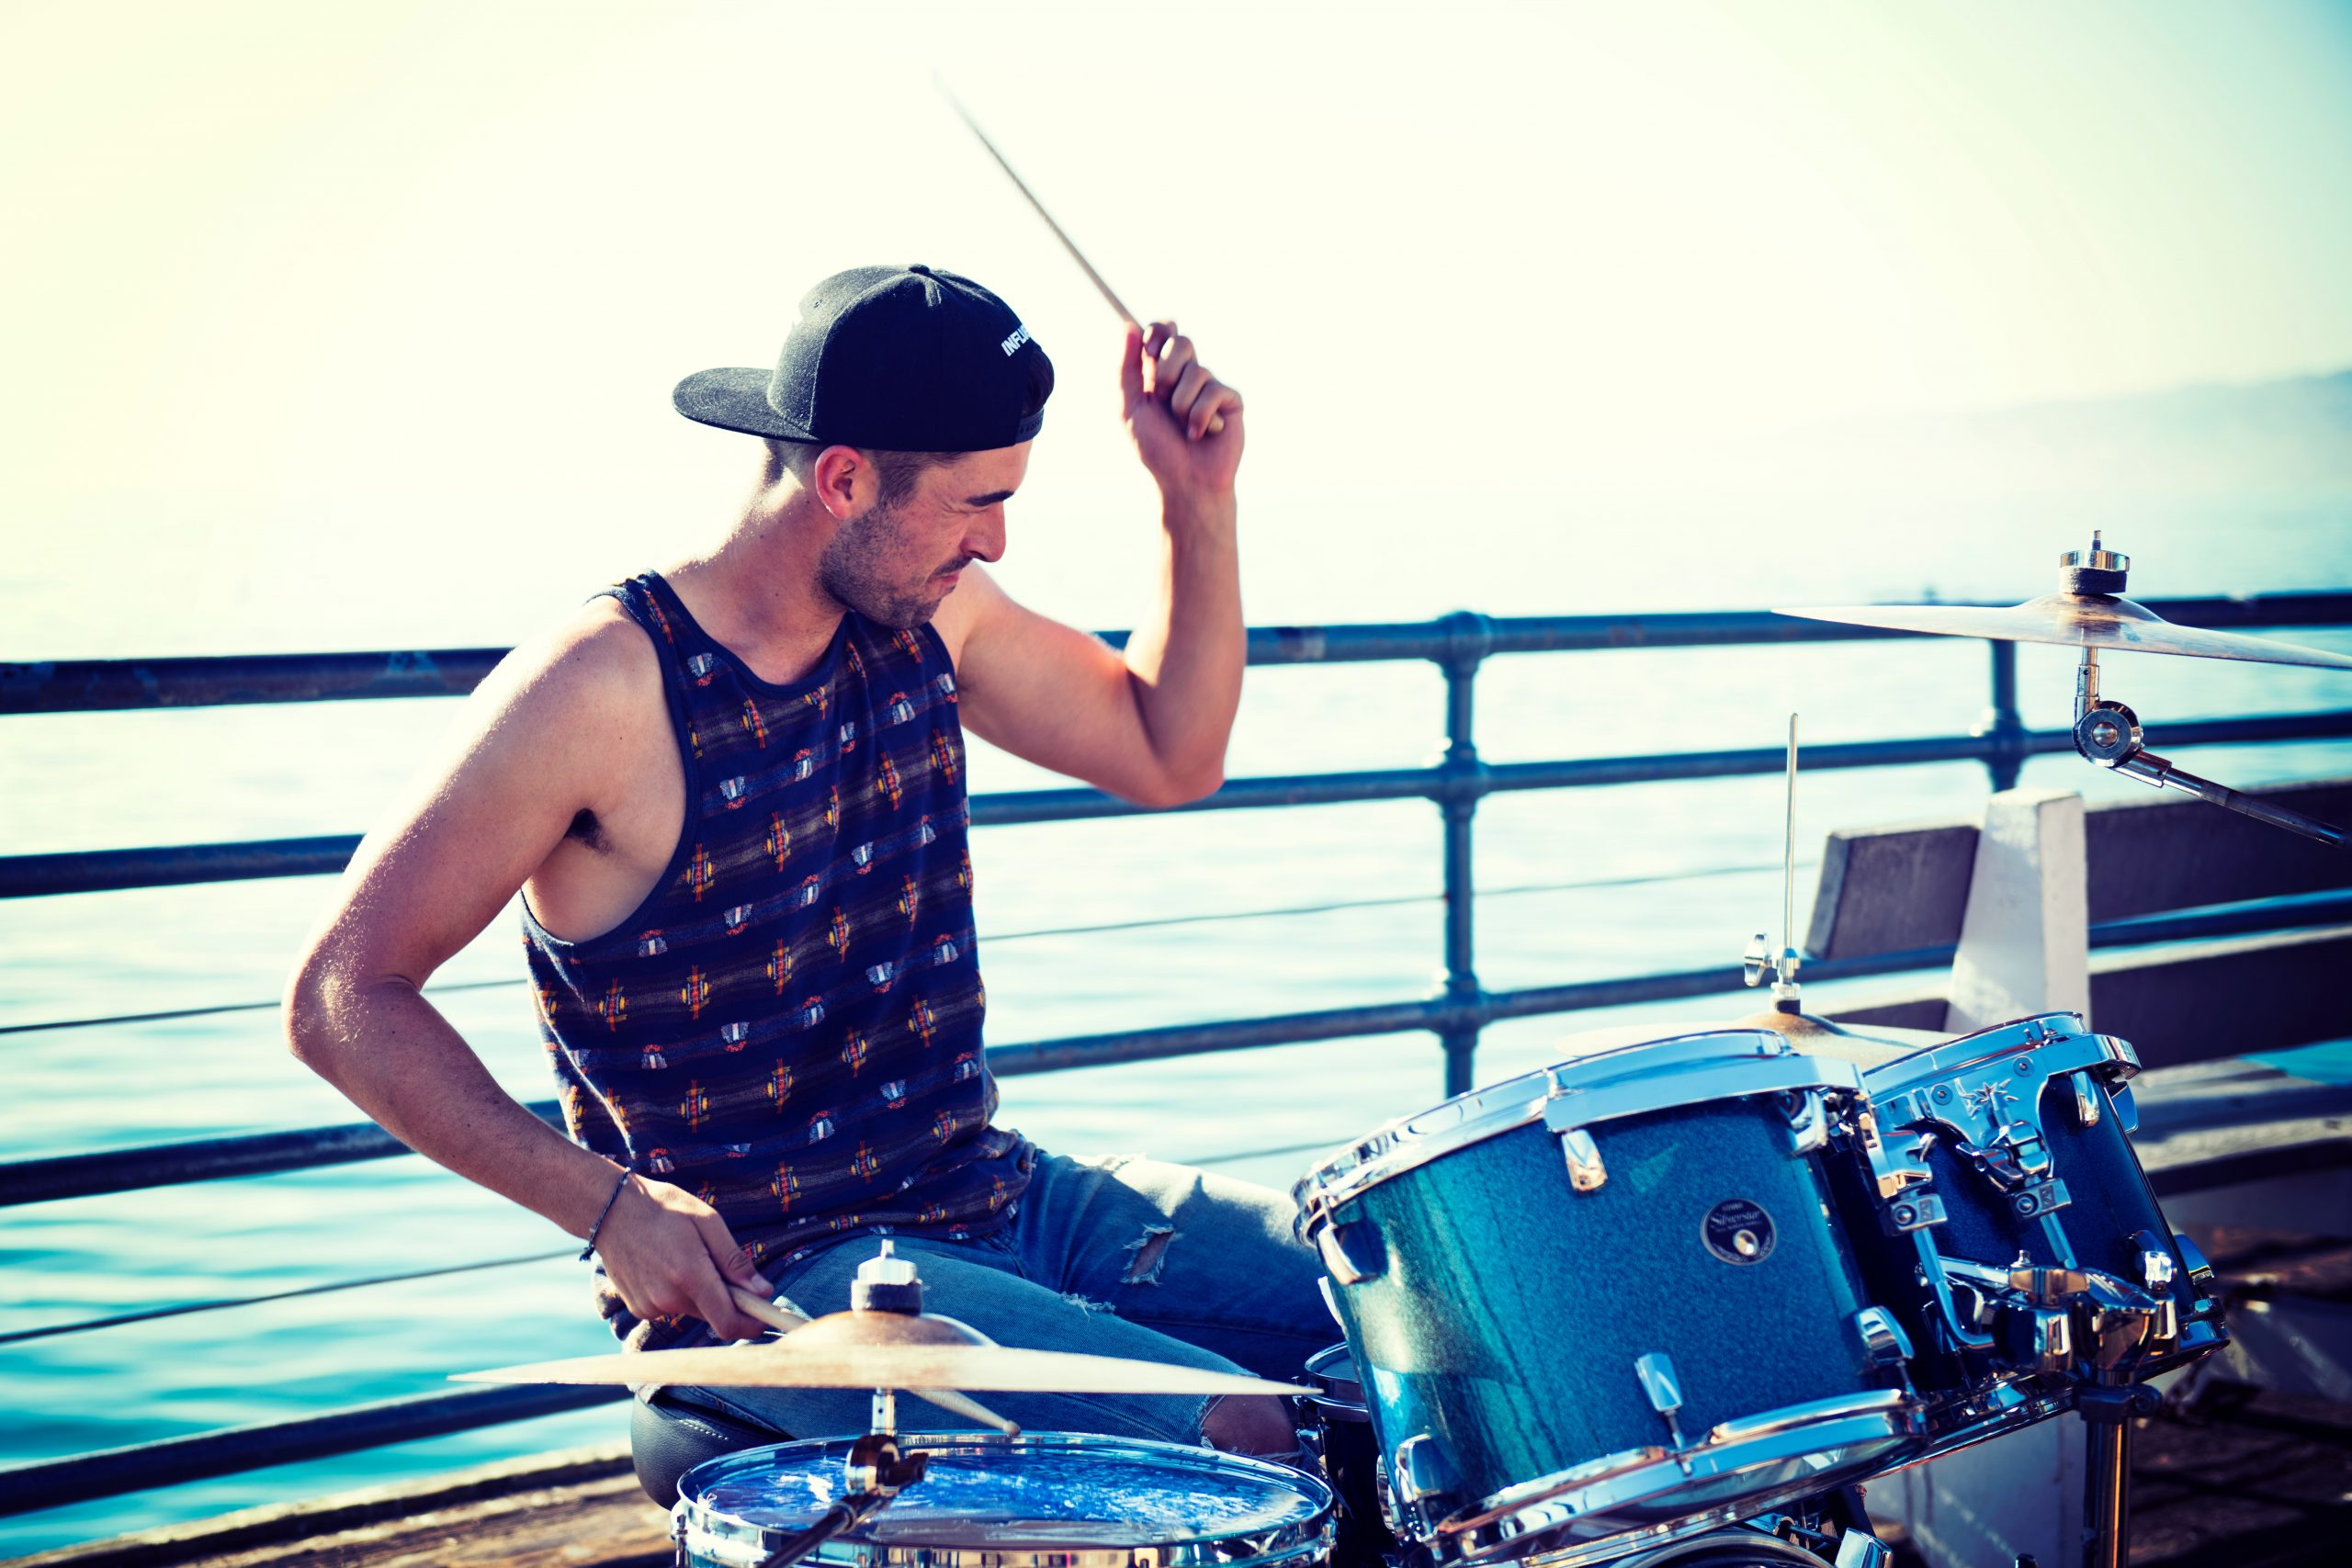 Was in Santa Monica, California, and at the end of the pier, heard some great drumming from Oliver Bohler. He's got skills! Check him out at:  https://www.facebook.com/oliverbohlermusic/